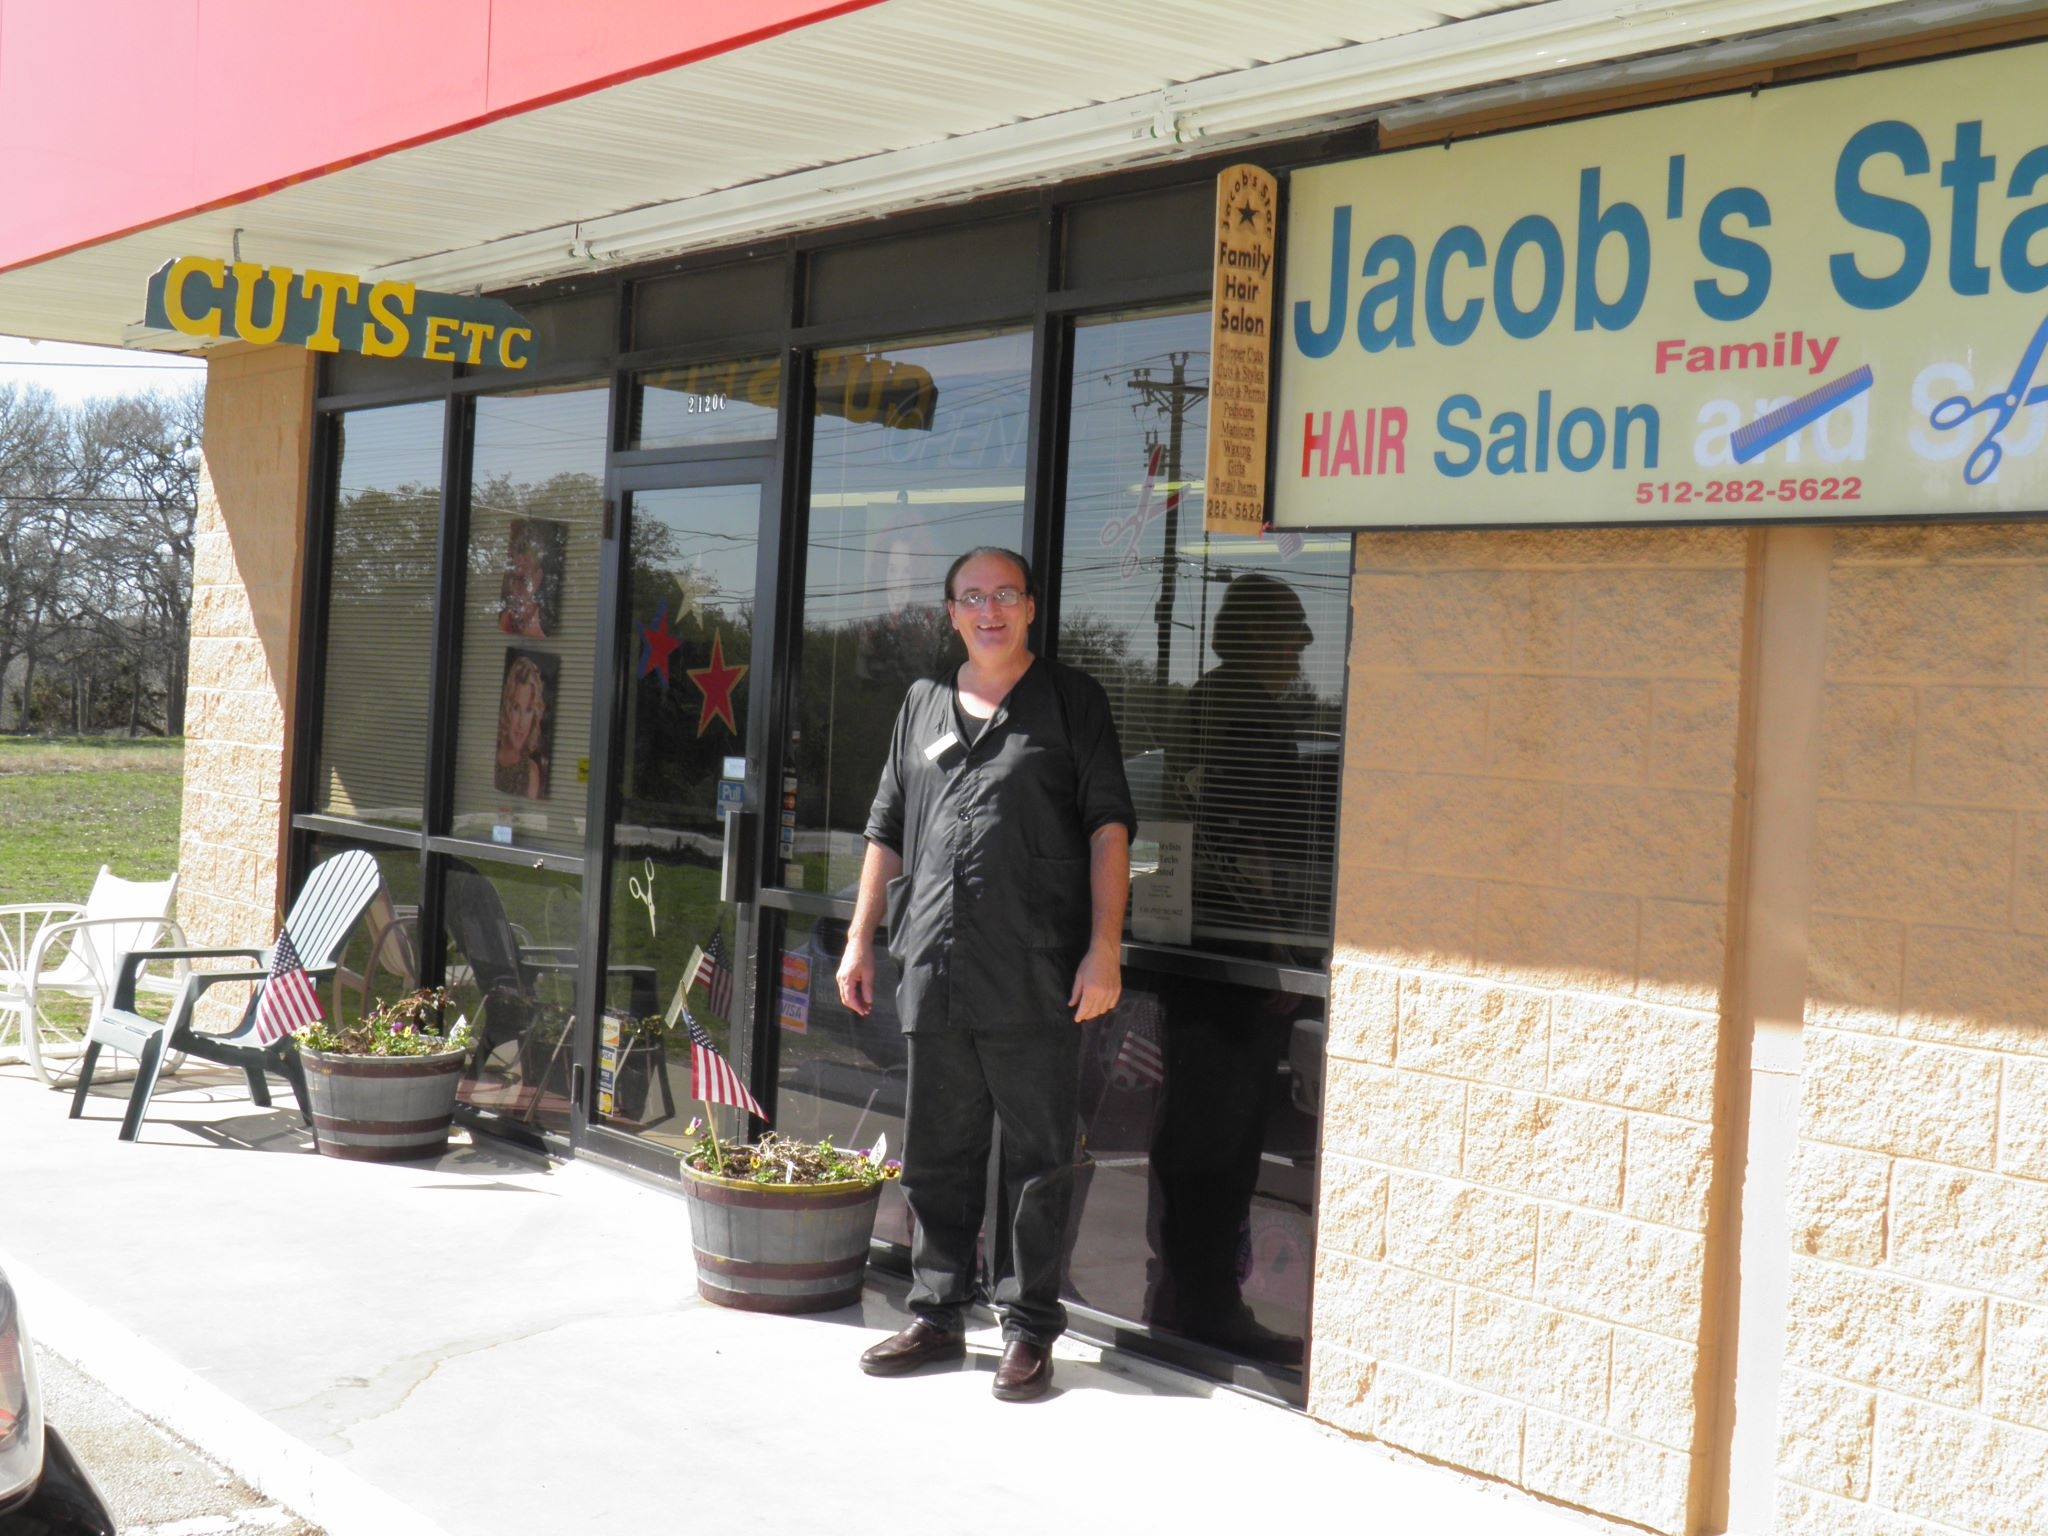 Jacob 39 s star family hair salon manchaca tx 78652 for 4 star salon services